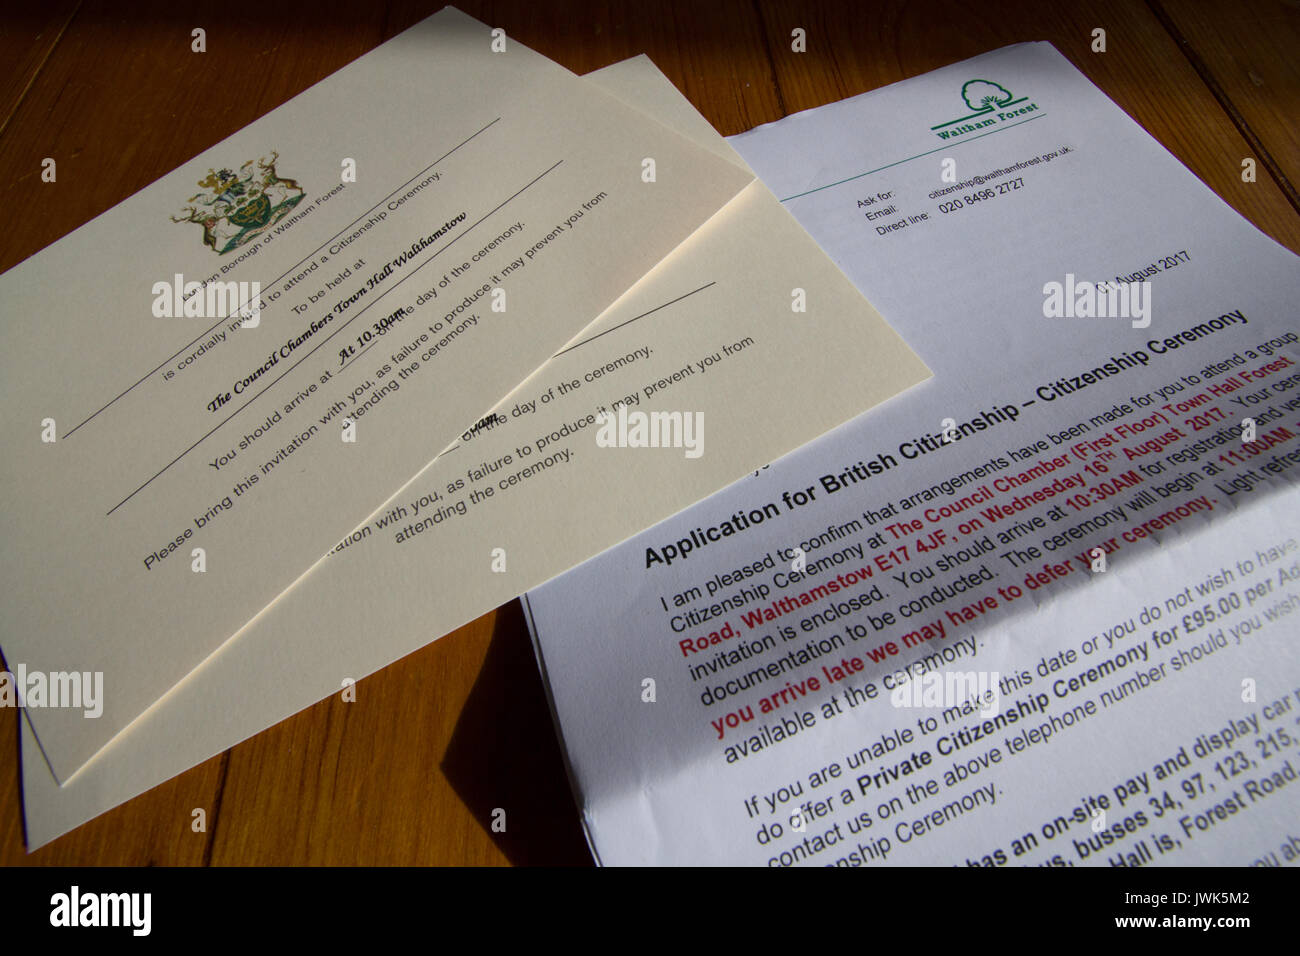 Waltham Forest Application for British citizen letter for Citizenship ceremony and invitations Stock Photo